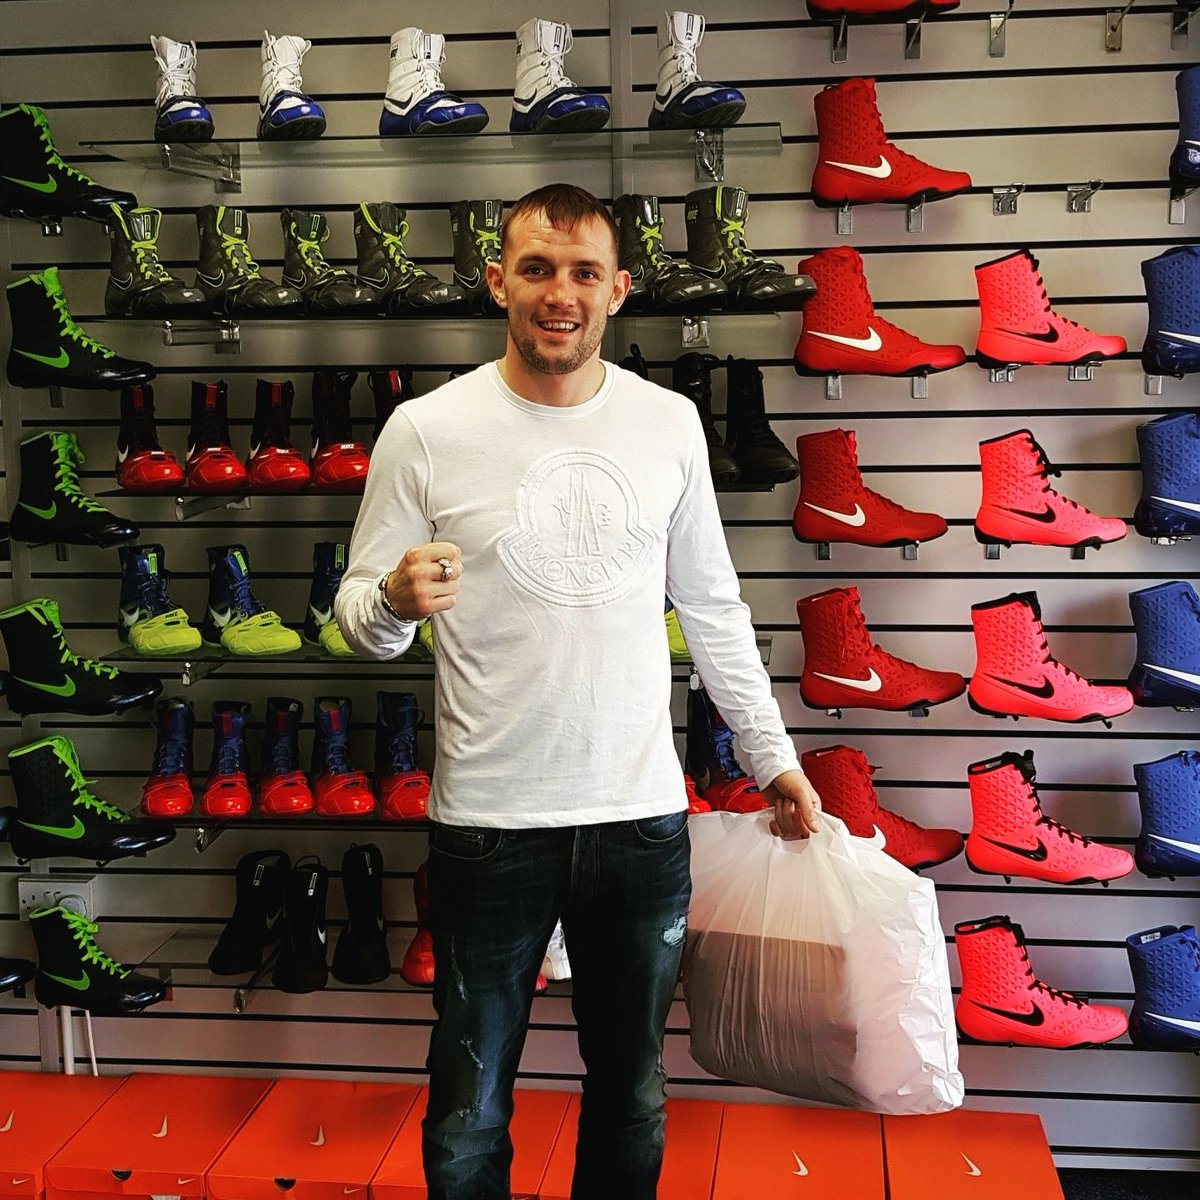 ab4650b85e0e Always Great to have Luke Blackledge in our Manchester Store  kotwins   komanchester  manchesterfightstore